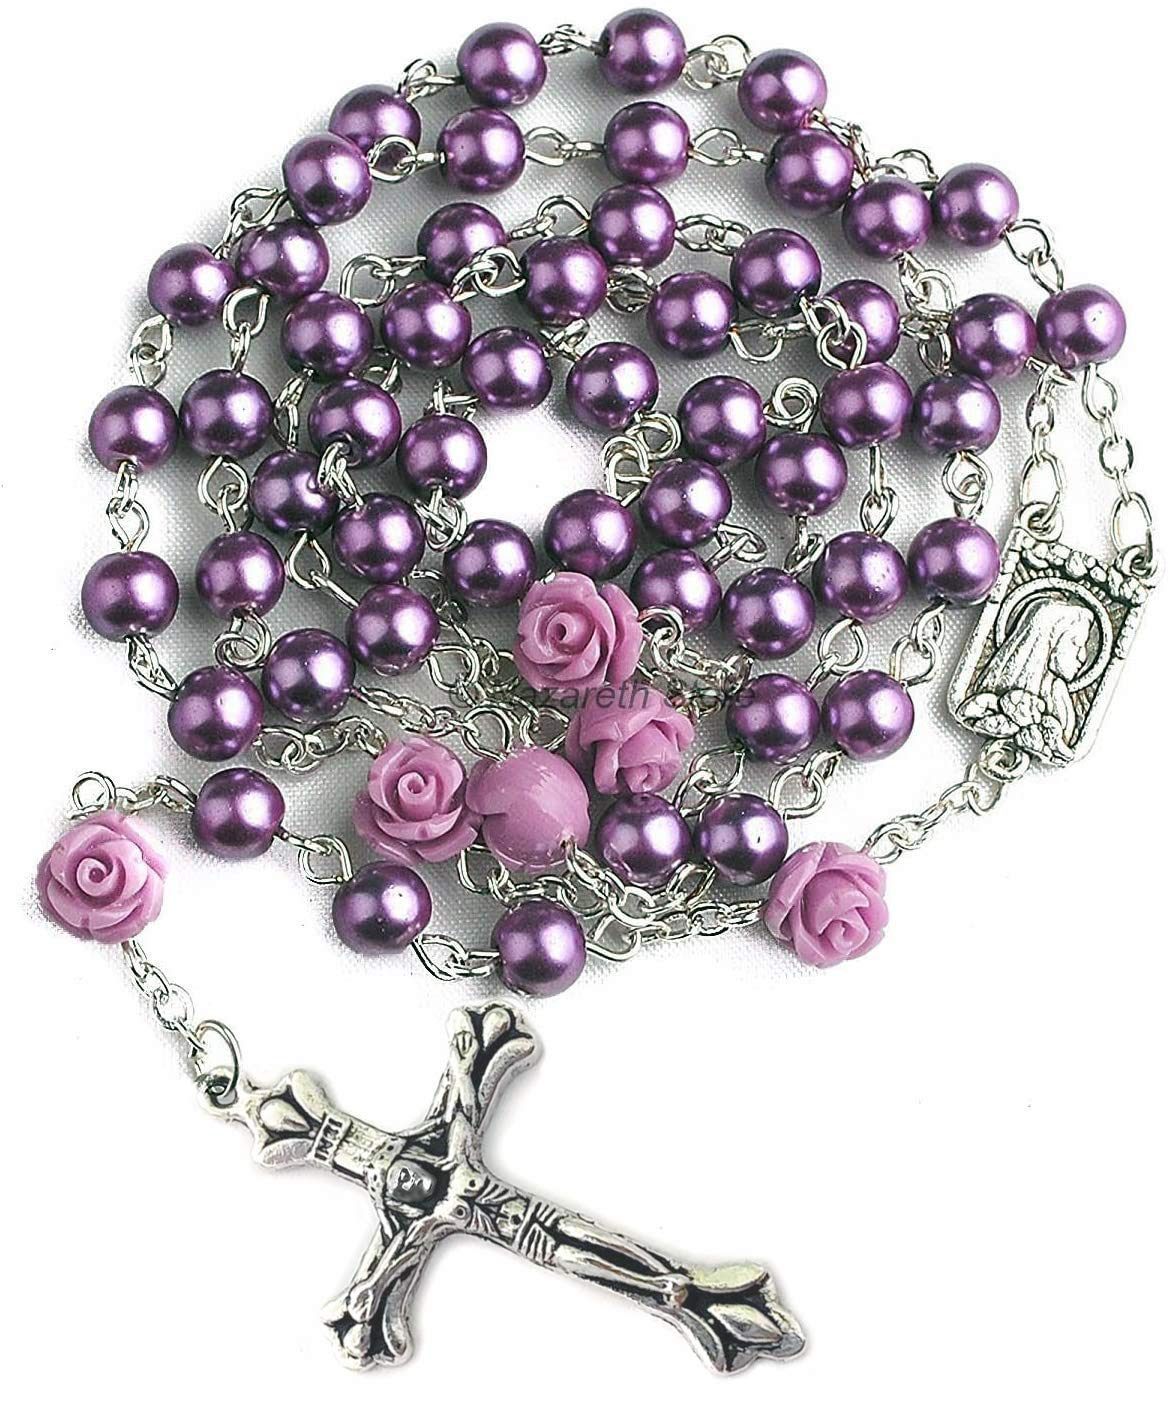 Nazareth Store Catholic Purple Pearl Beads Rosary Necklace Our Rose Lourdes Medal & Cross NS